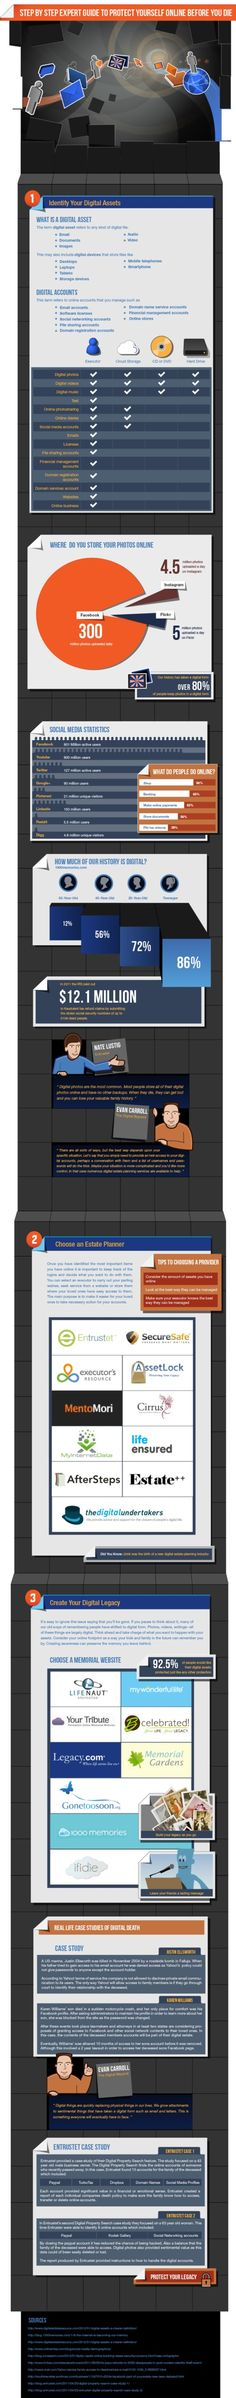 Step By Step Expert Guide To Protect Yourself Online Before You Die Marketing Words, Inbound Marketing, Social Media Marketing, Digital Asset Management, Online Self, Good Advice For Life, Personal History, Data Visualization, Internet